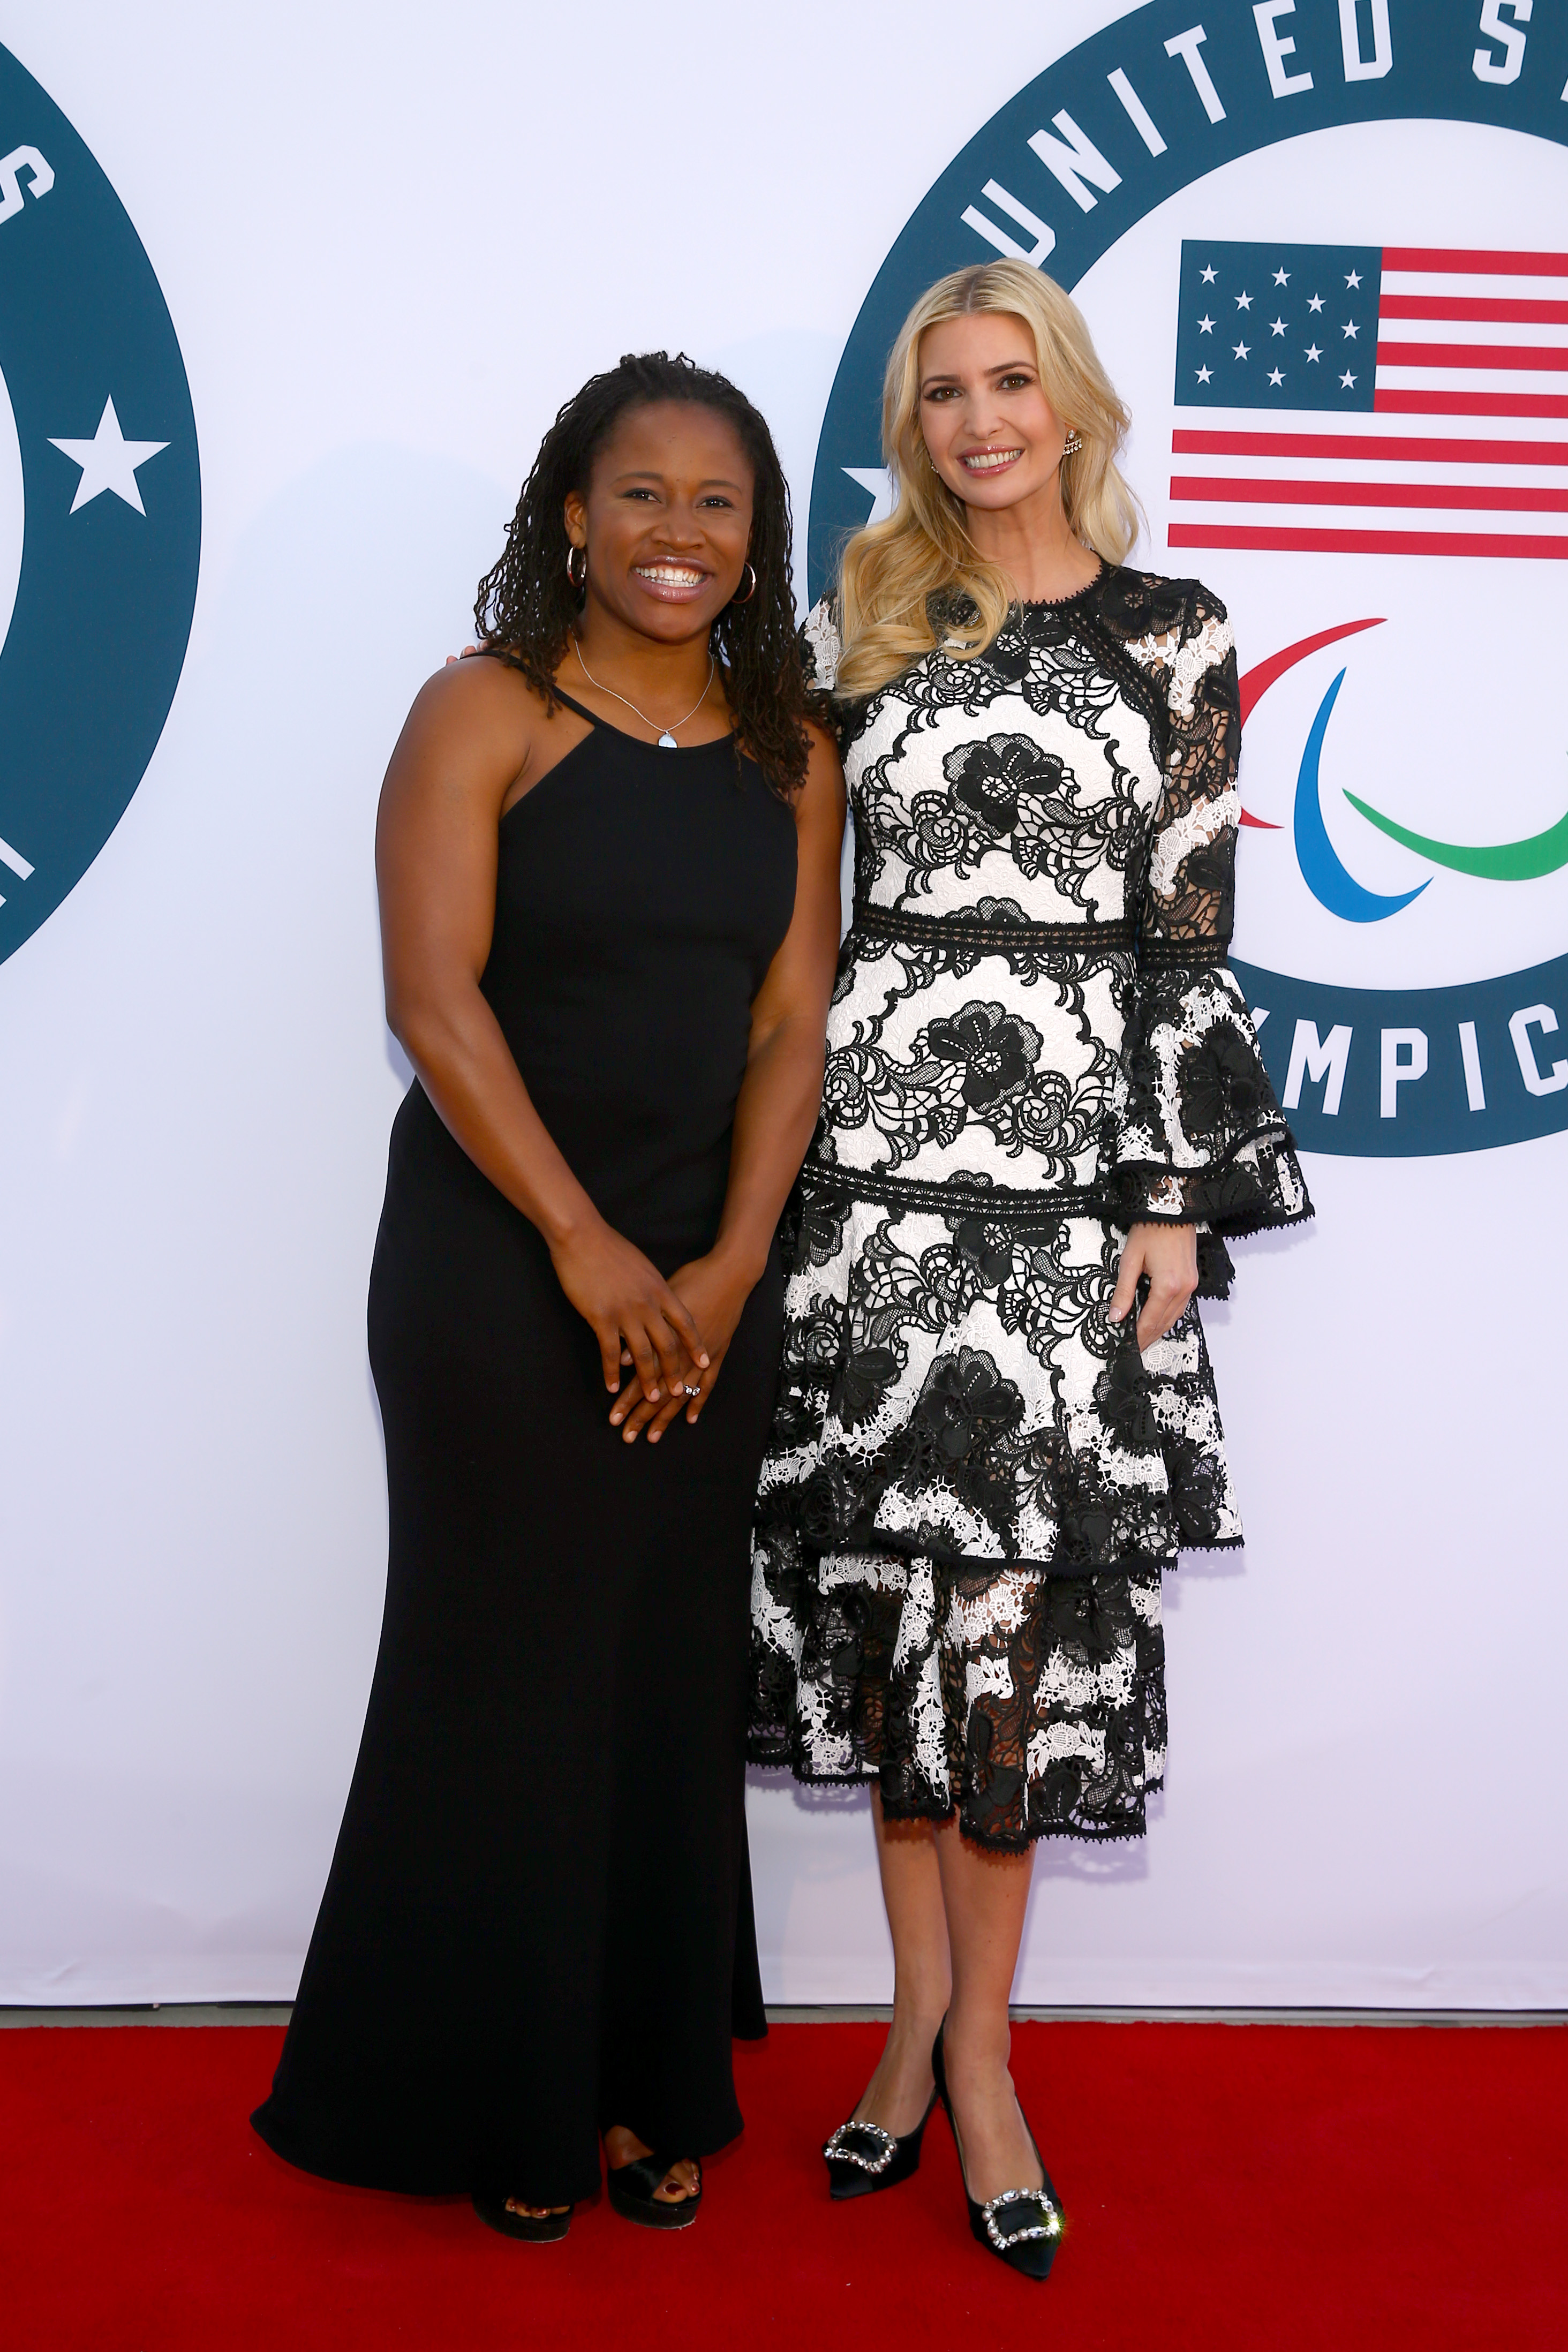 WASHINGTON, DC - APRIL 26:  Marlene Dortch and Ivanka Trump attend the Team USA Awards at the Duke Ellington School of the Arts on April 26, 2018 in Washington, DC.  (Photo by Tasos Katopodis/Getty Images for USOC)